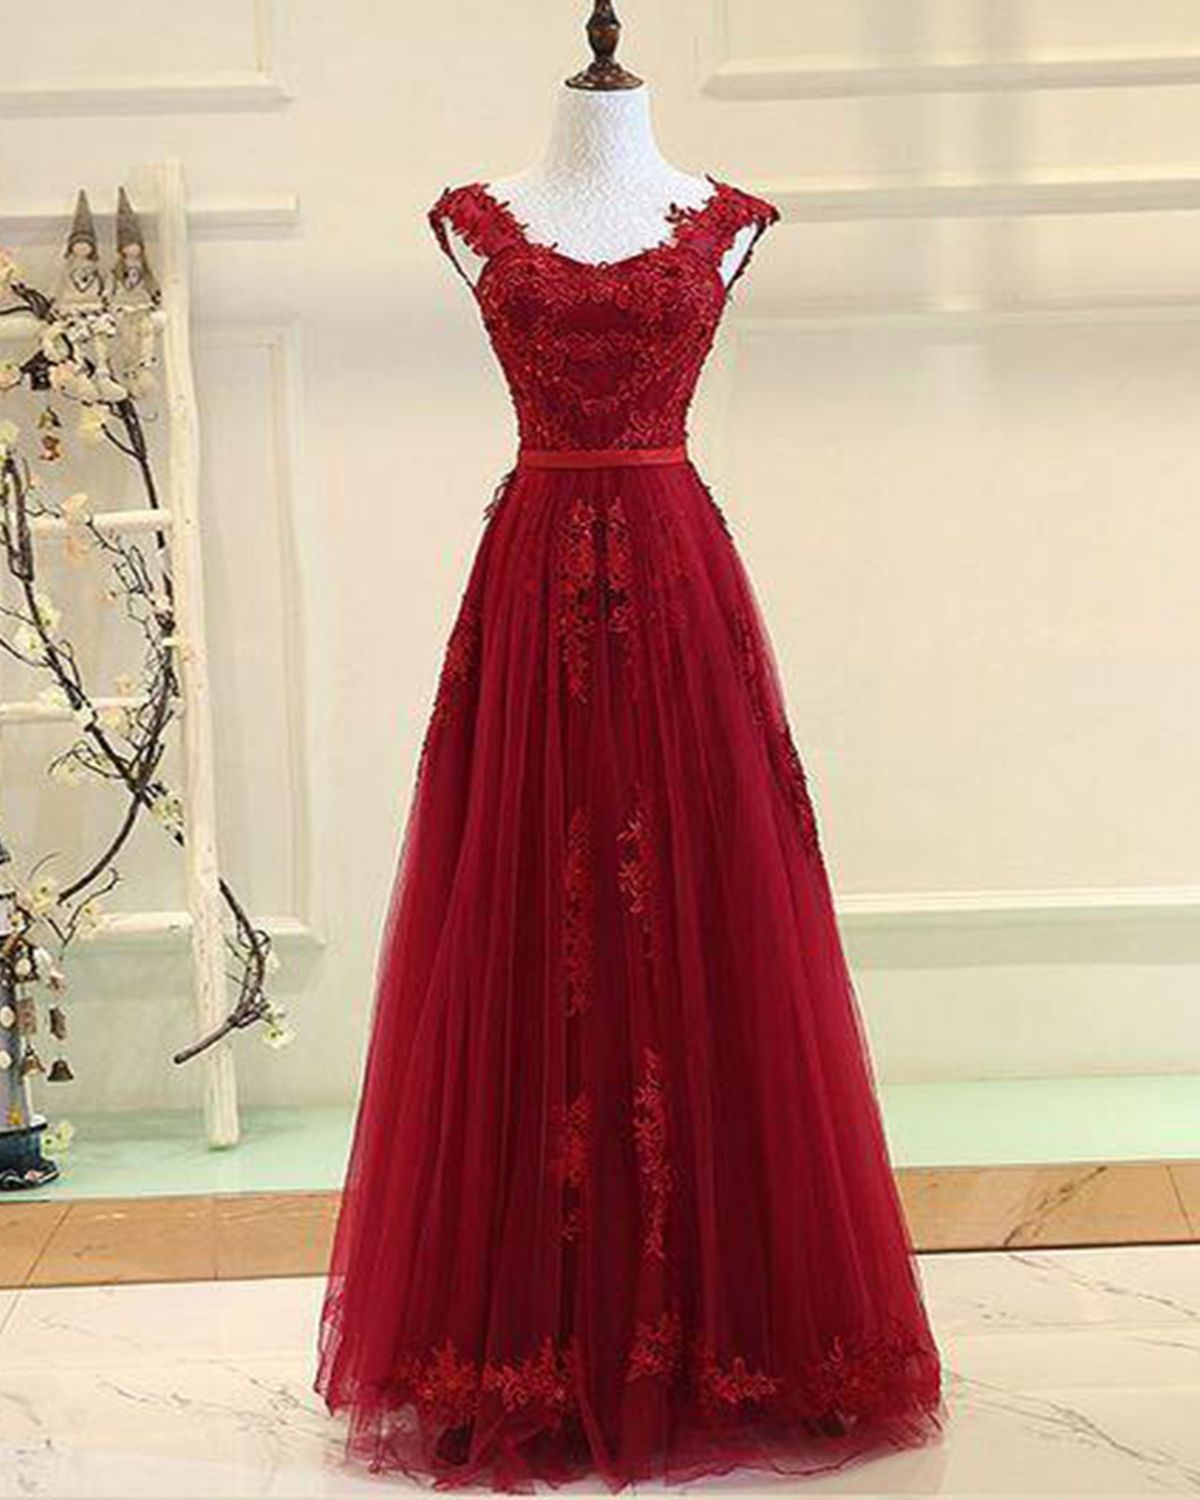 Lace prom dress burgundy prom dress tulle prom dress for teens